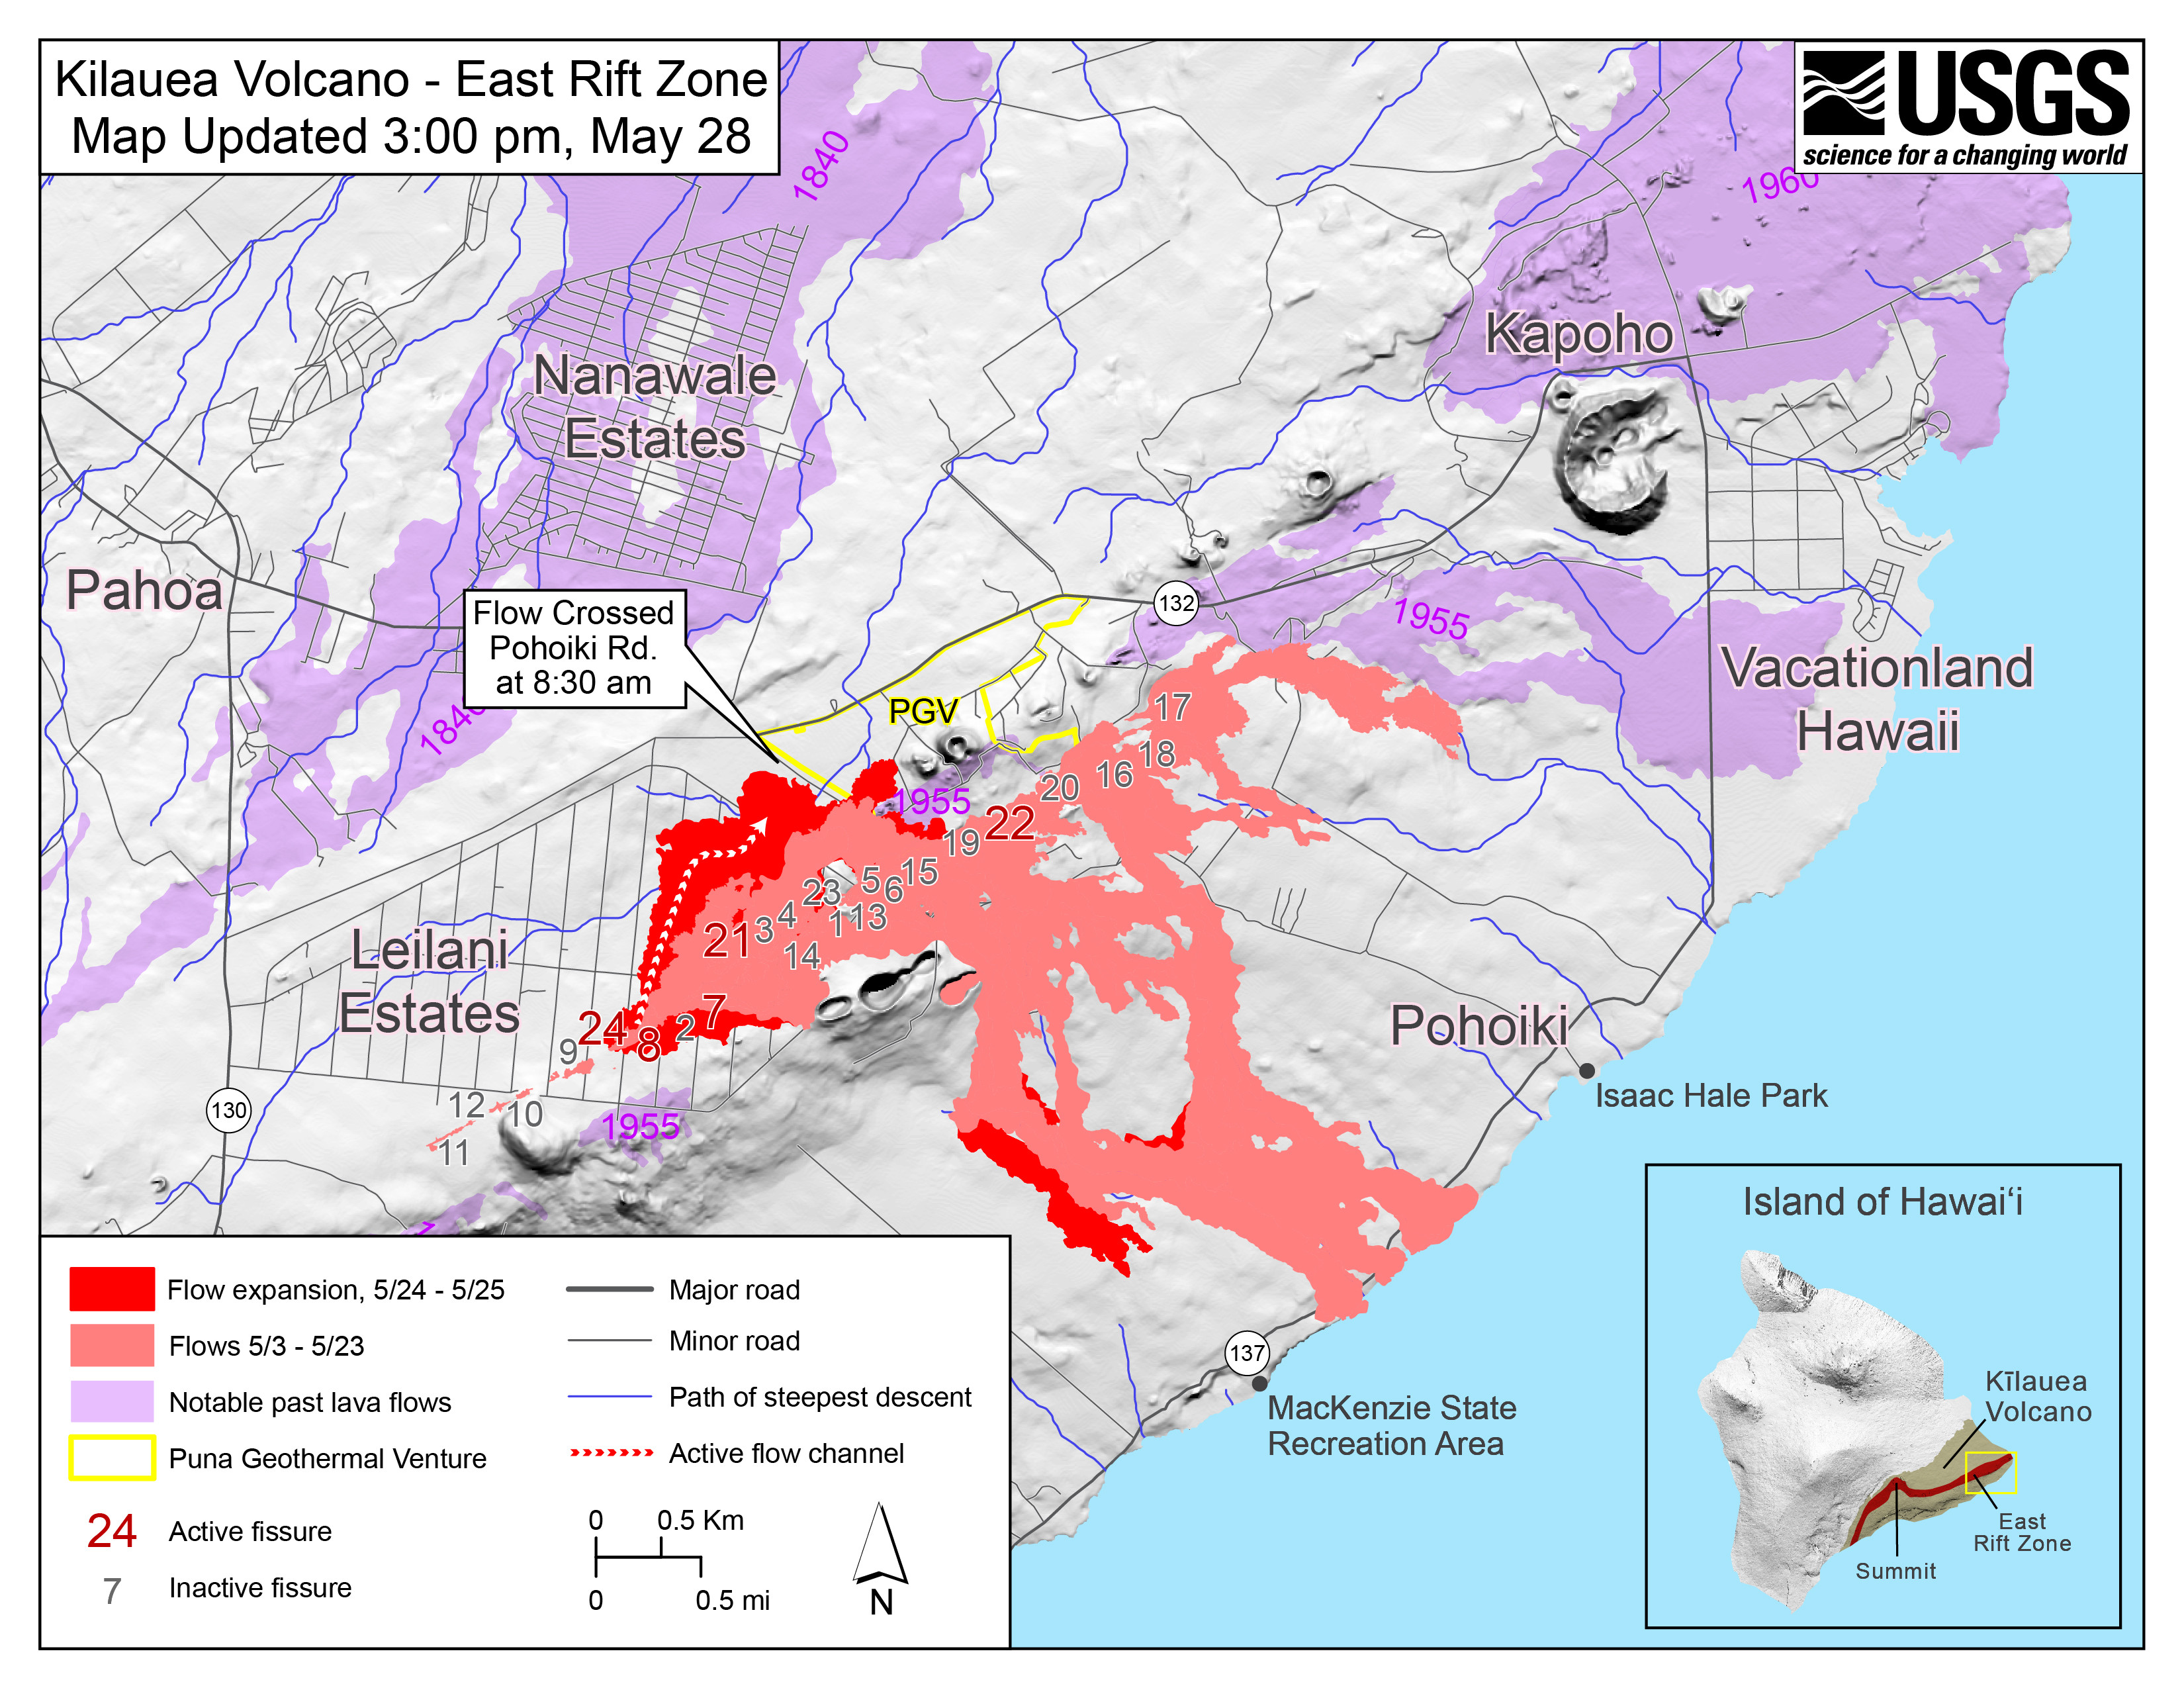 Map as of 3 00 p m HST May 28 2018 Shaded purple areas indicate lava flows erupted in 1840 1955 1960 and 2014 2015 to enlarge